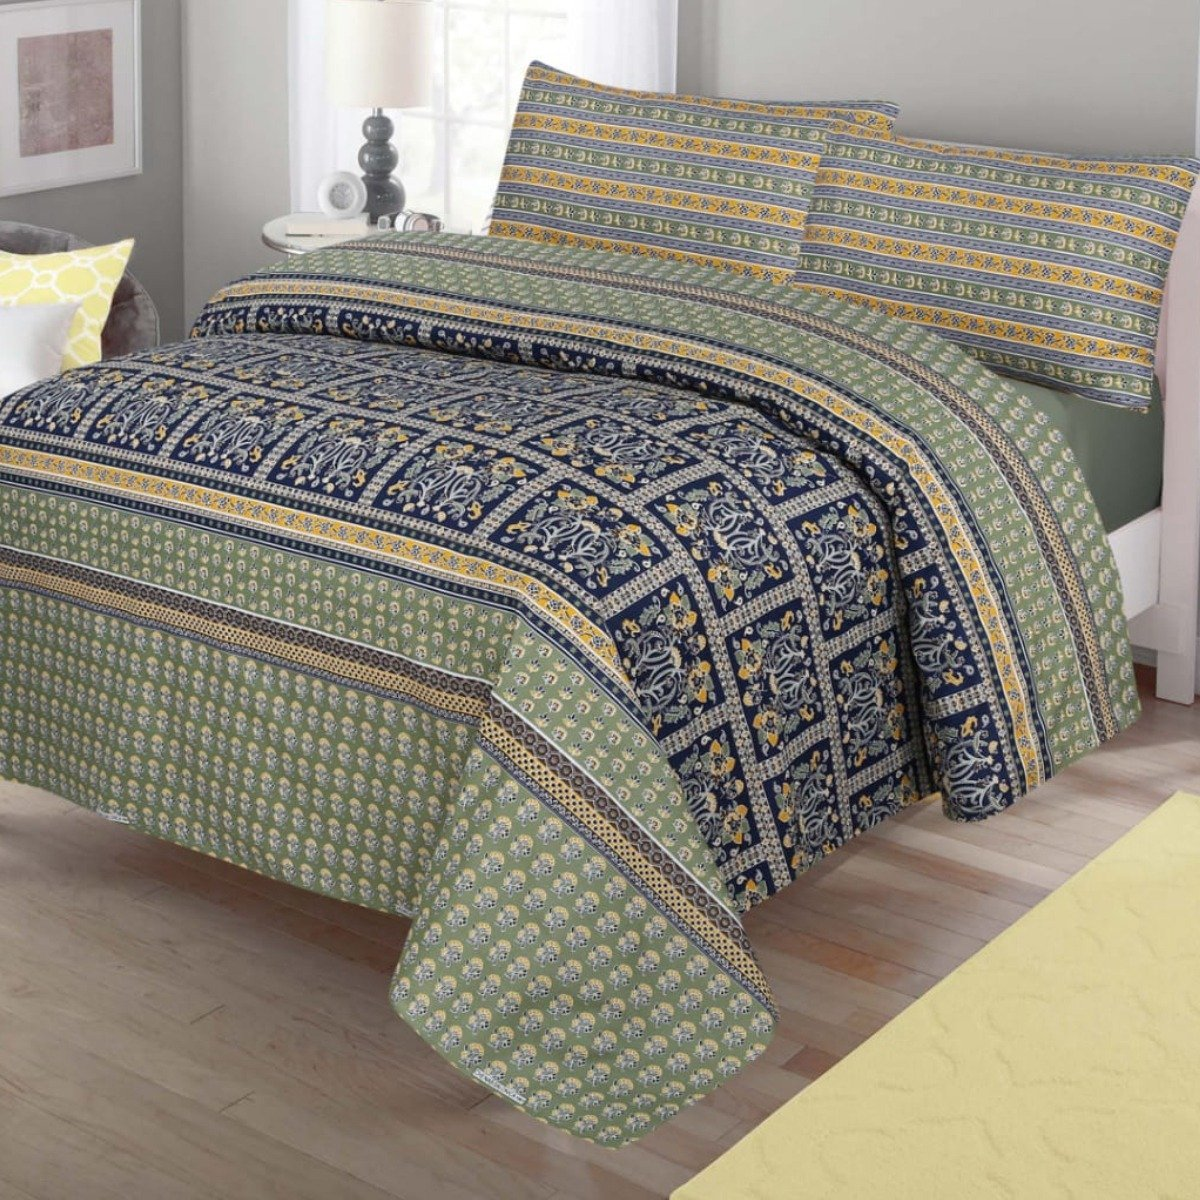 Cotton Double Bed Sheet With 2 Pillow cases - waseeh.com